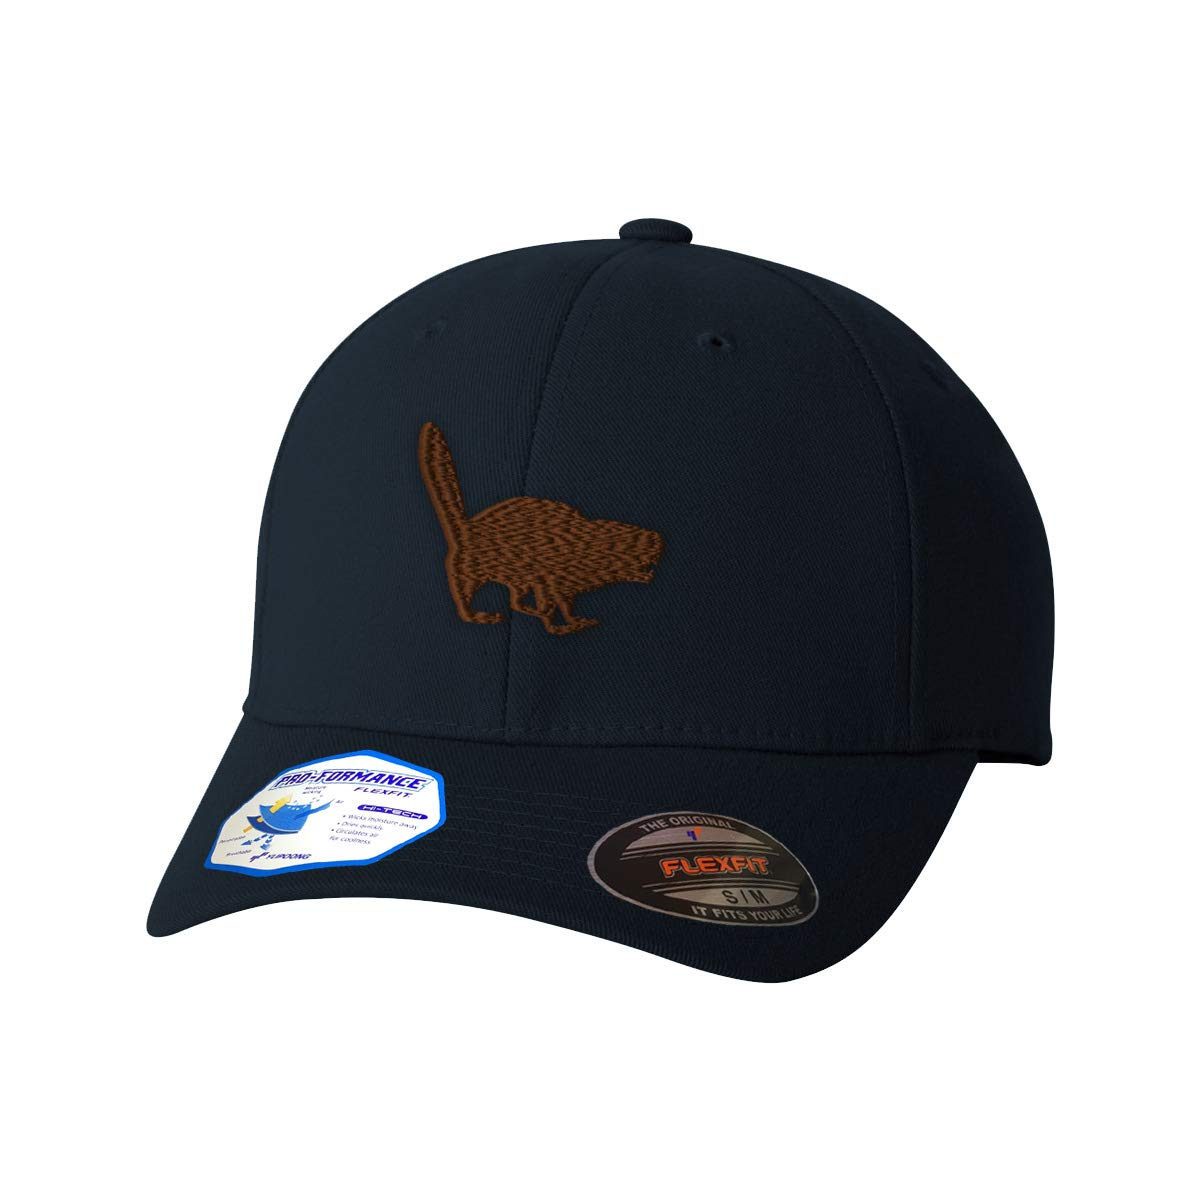 78085304b01 Amazon.com  Custom Flexfit Baseball Cap Beaver Funny D0G Embroidery Animal  Name Polyester  Clothing